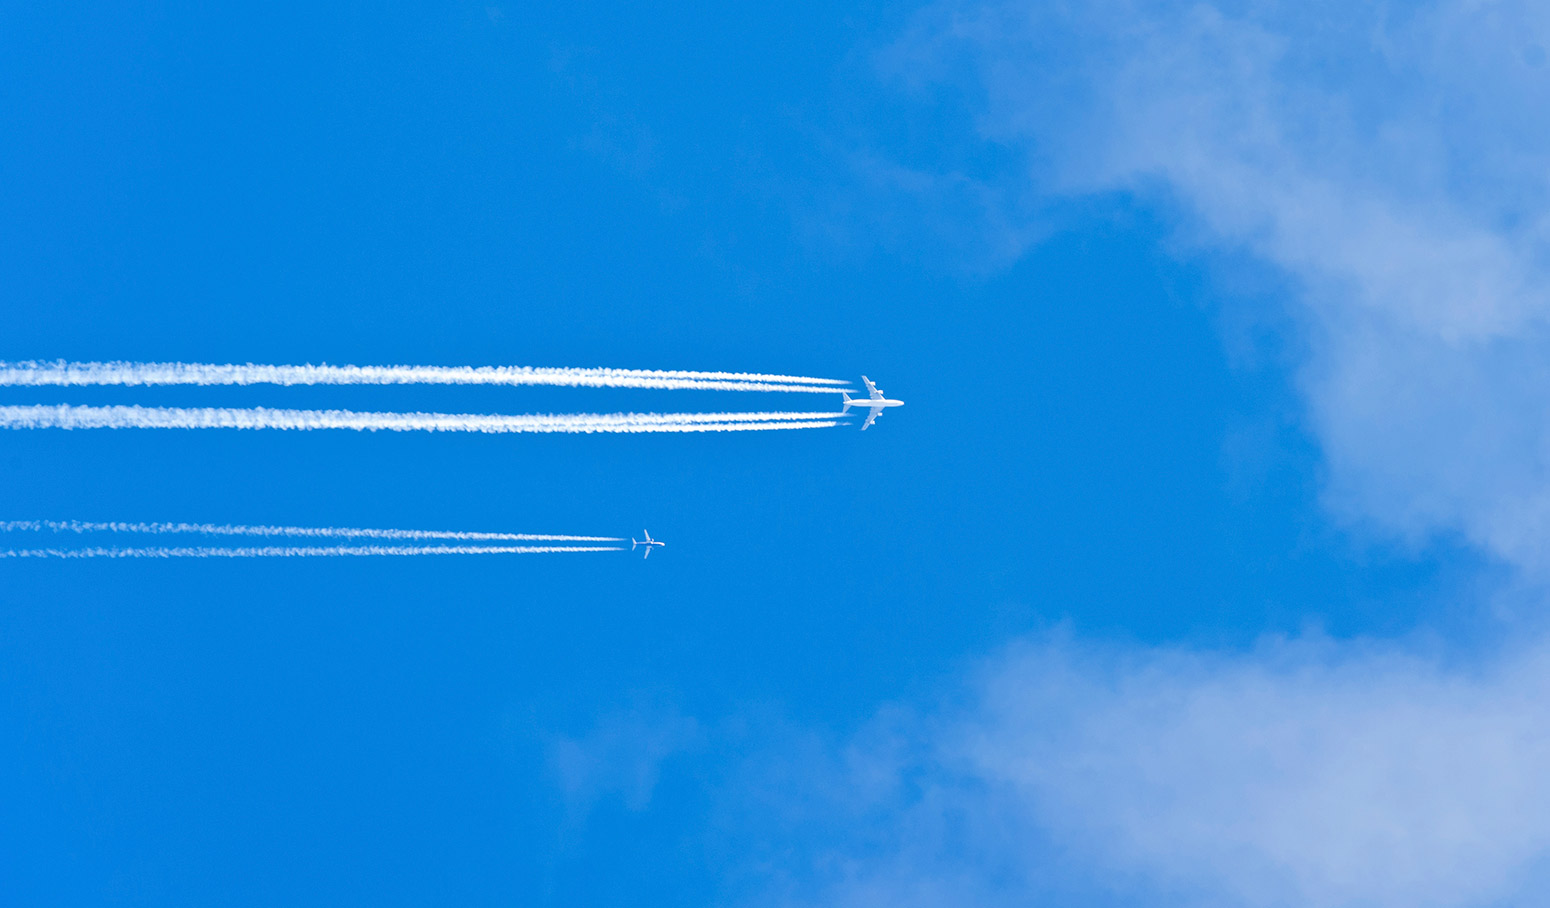 2 airplanes flying in close proximity